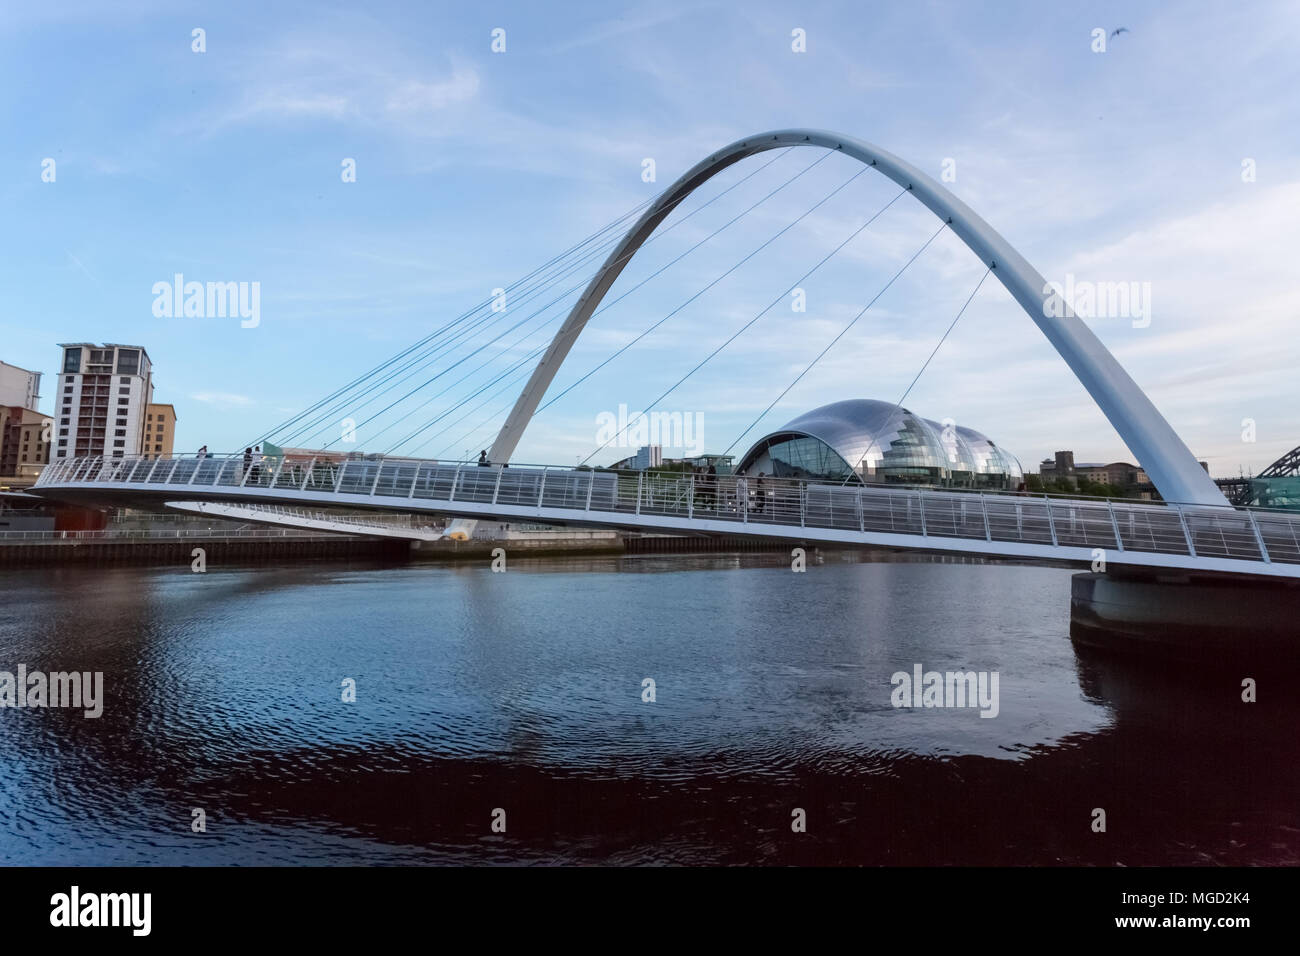 Newcastle United Kingdom May 23 2015 The Gateshead Millennium Bridge A Tilt Bridge Spanning The Tyne River In Newcastle And Gateshead Stock Photo Alamy